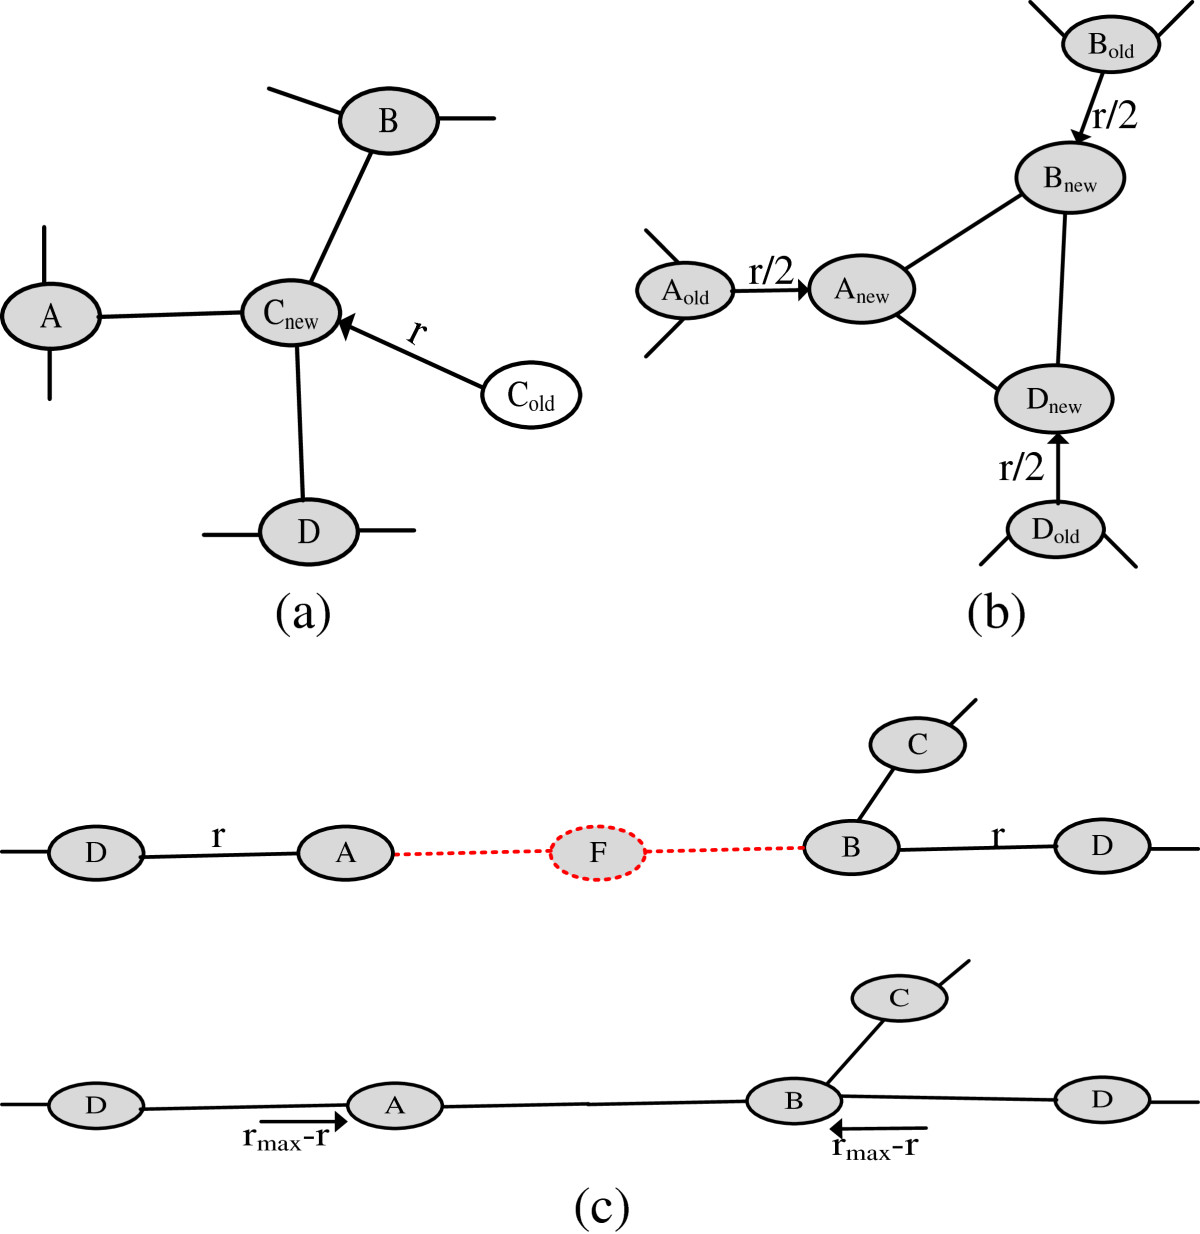 http://static-content.springer.com/image/art%3A10.1186%2F1687-1499-2012-347/MediaObjects/13638_2012_Article_545_Fig8_HTML.jpg